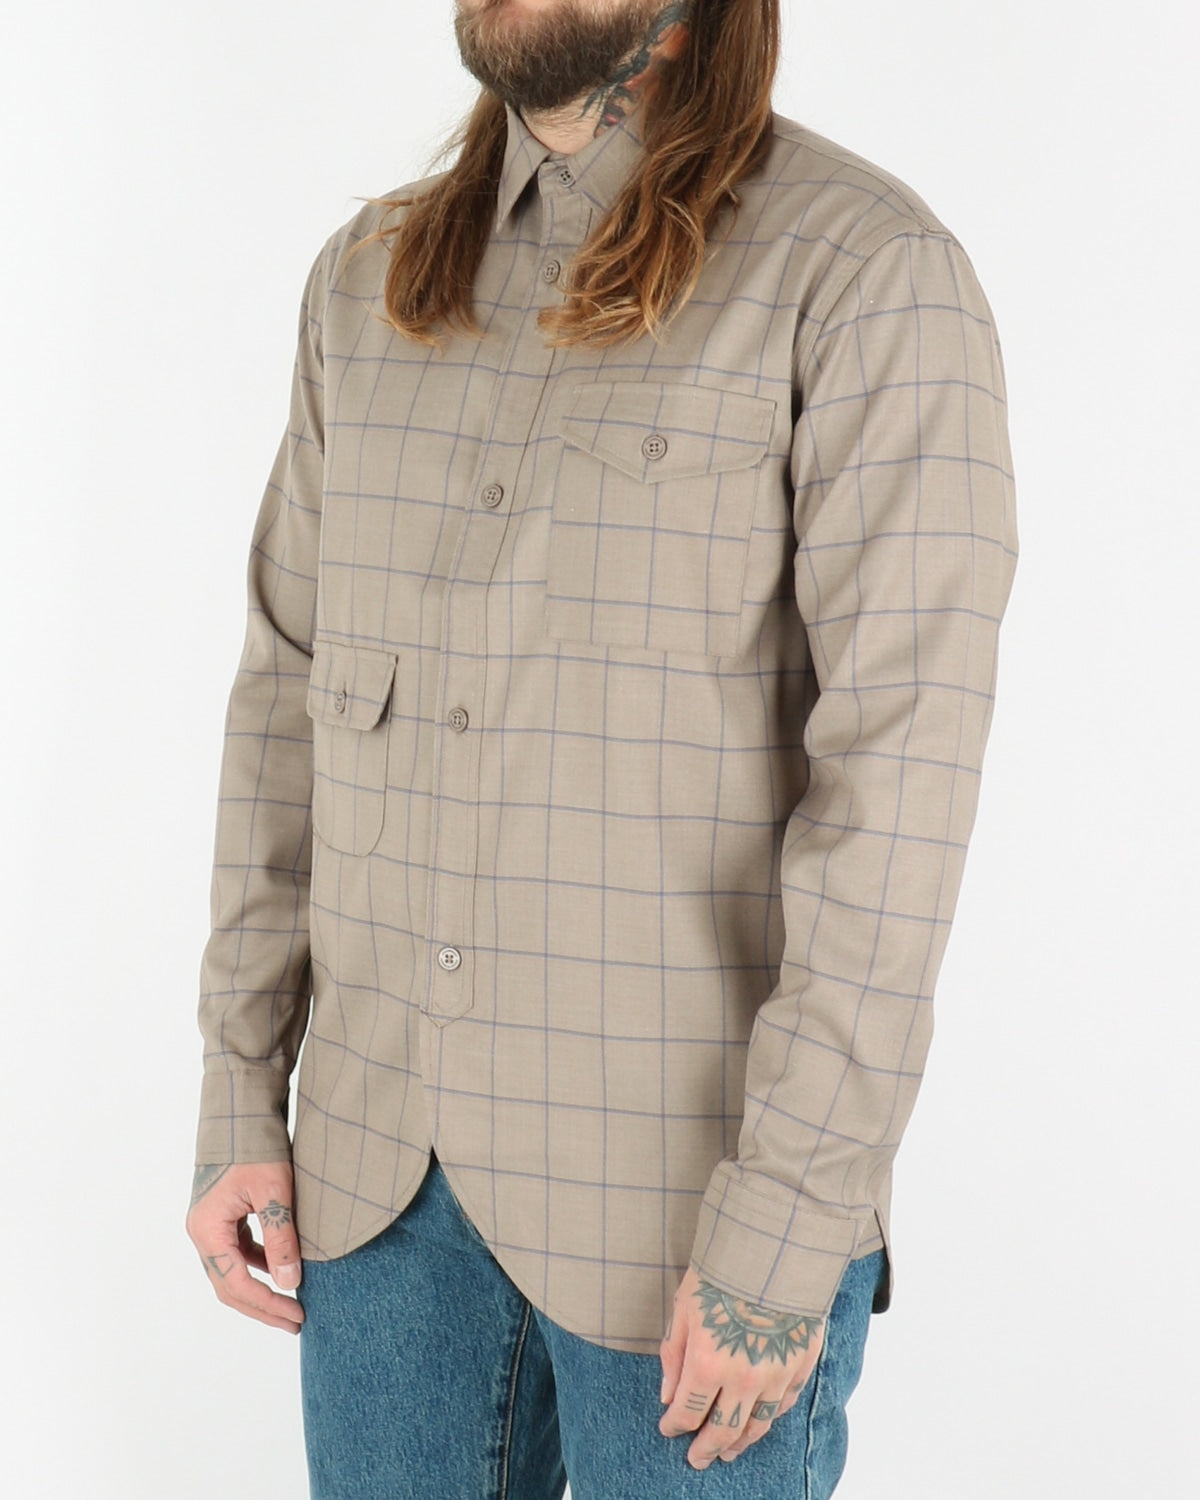 han kjobenhavn_army shirt_sand windowpane_2_3